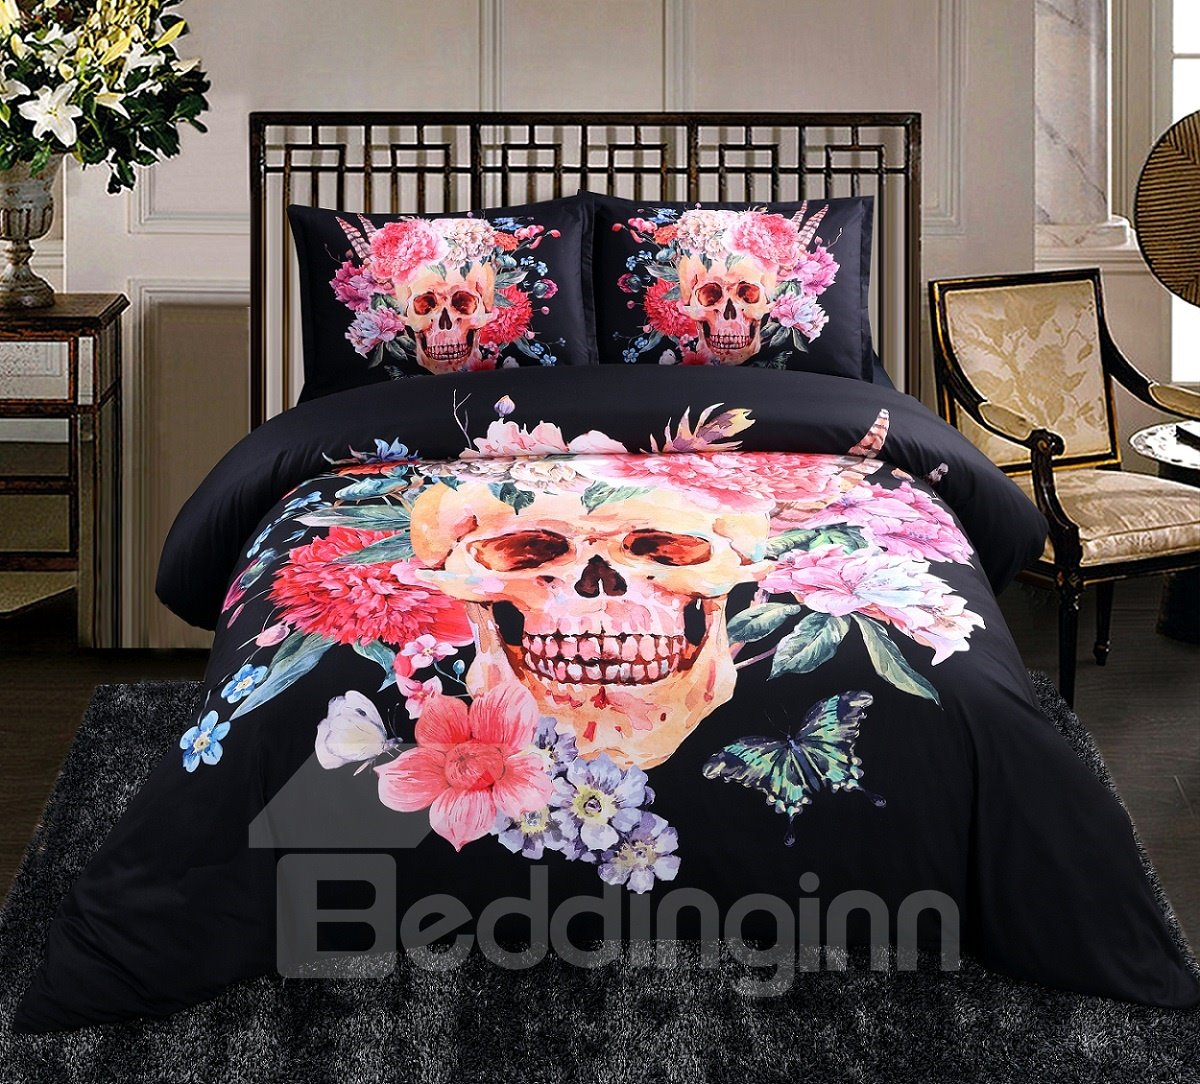 3D Sugar Skull with Blooming Flowers Printed Cotton 4-Piece Black Halloween Bedding Sets/Duvet Covers